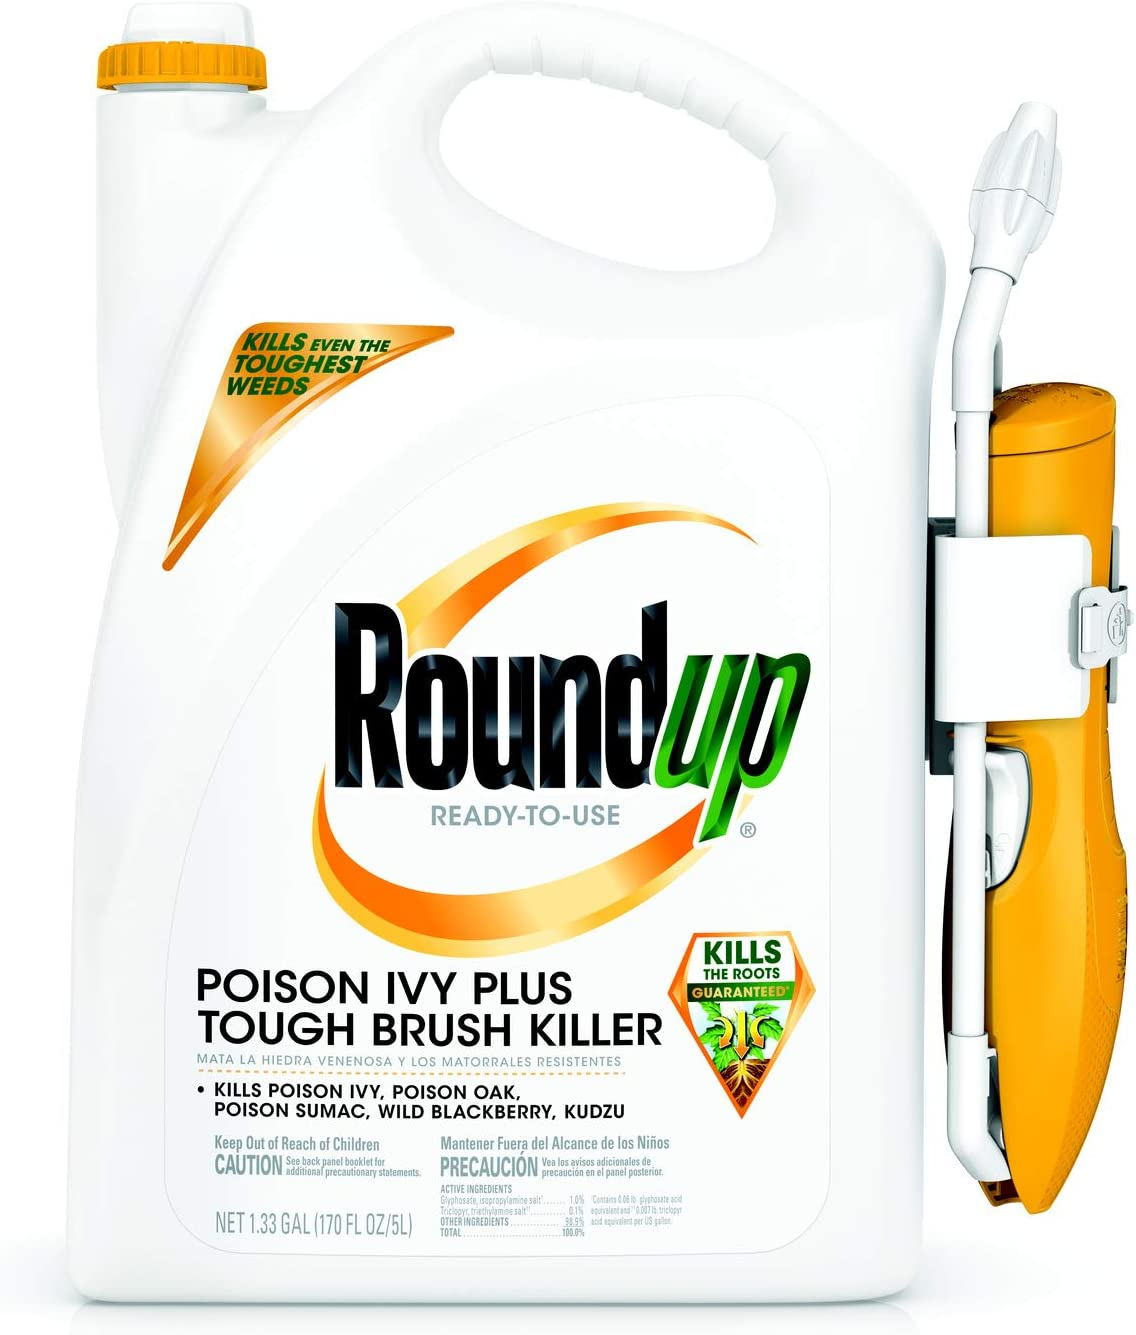 RoundUp Ready-to-Use Poison Ivy Plus Tough Brush Killer